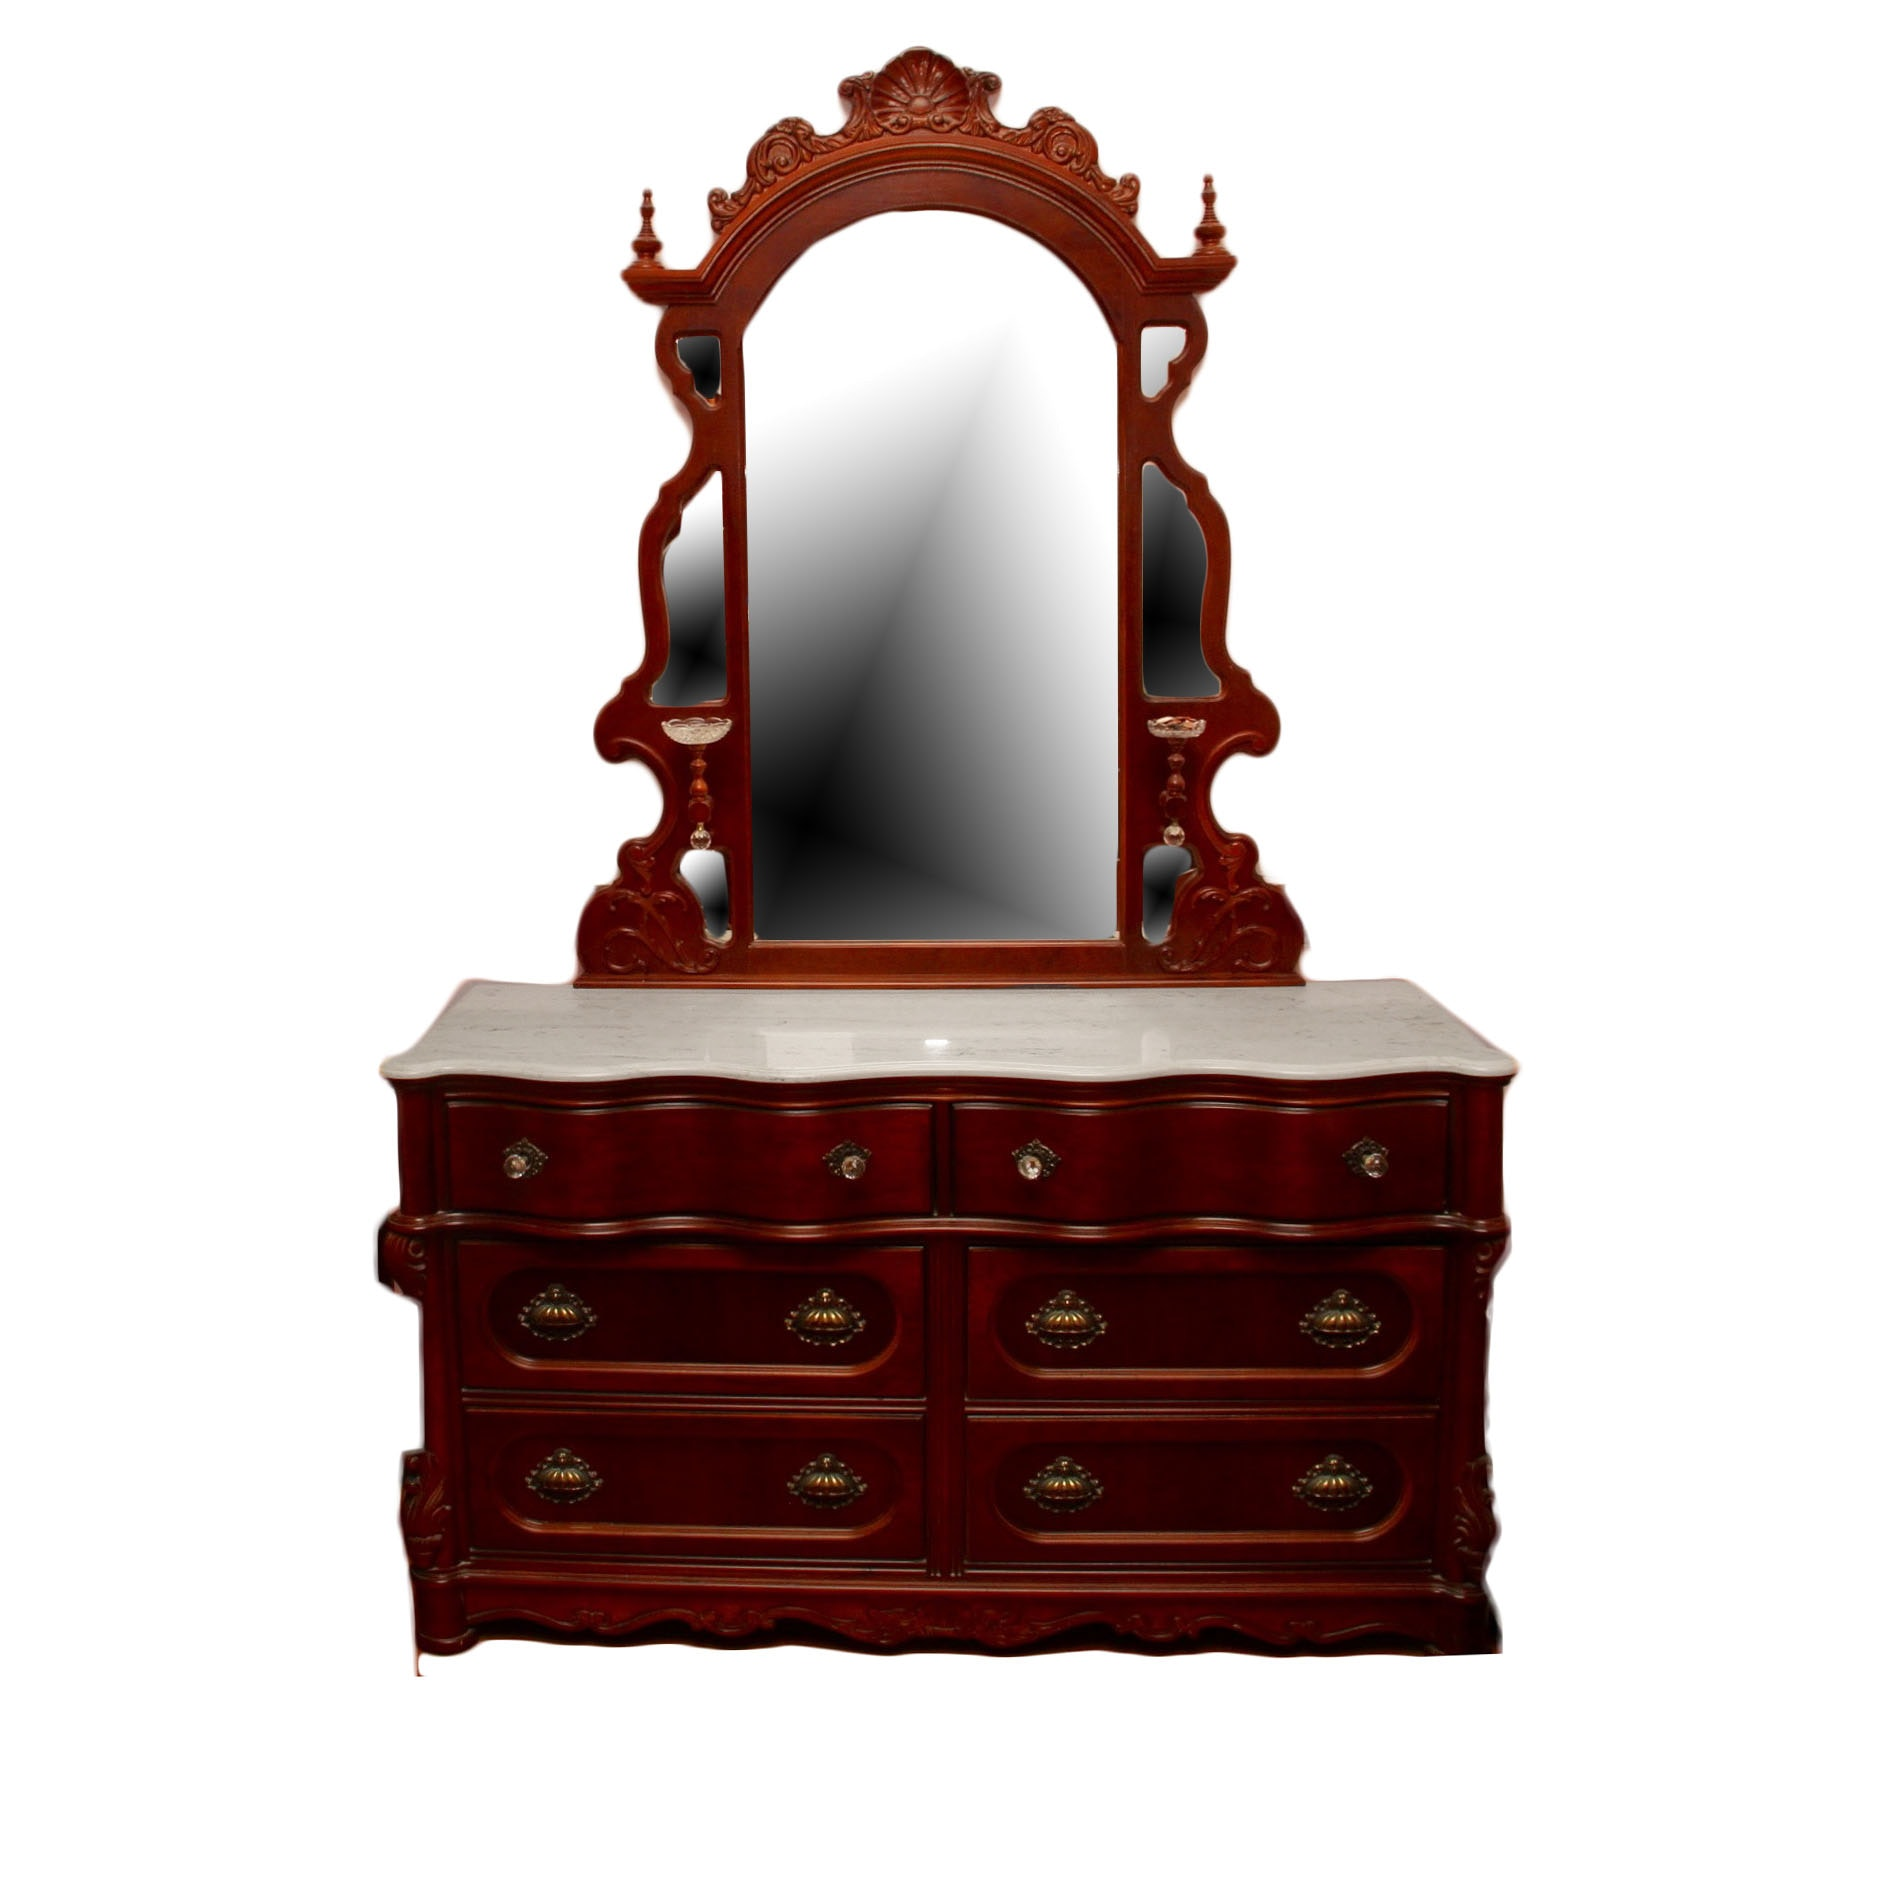 Central Auto Sales >> Pulaski Furniture Mahogany Reproduction Victorian Style Marble Top Dresser with Mirror : EBTH